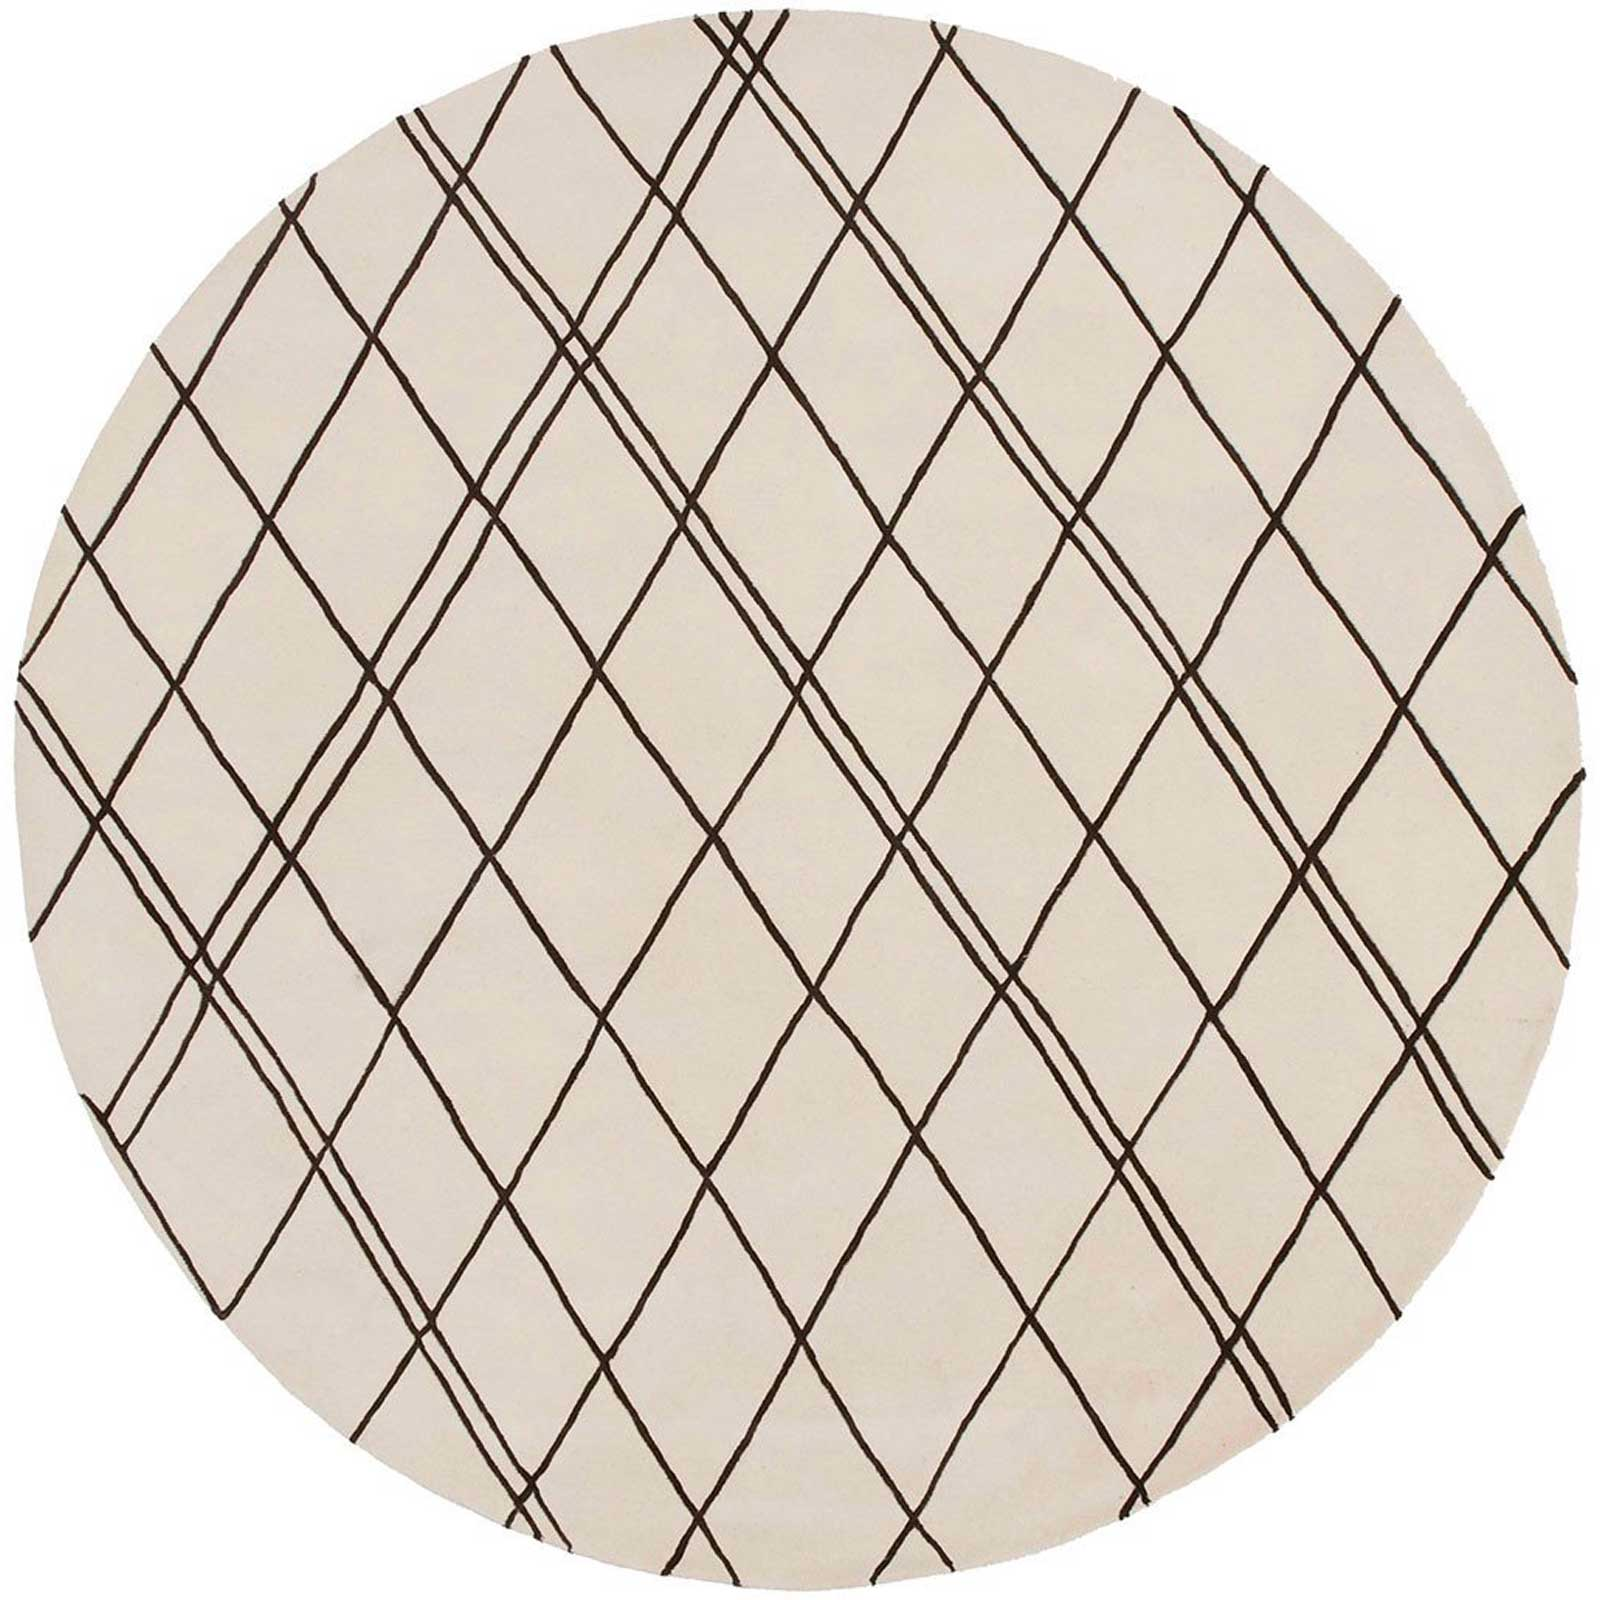 Studio Beige/Chocolate Round Rug